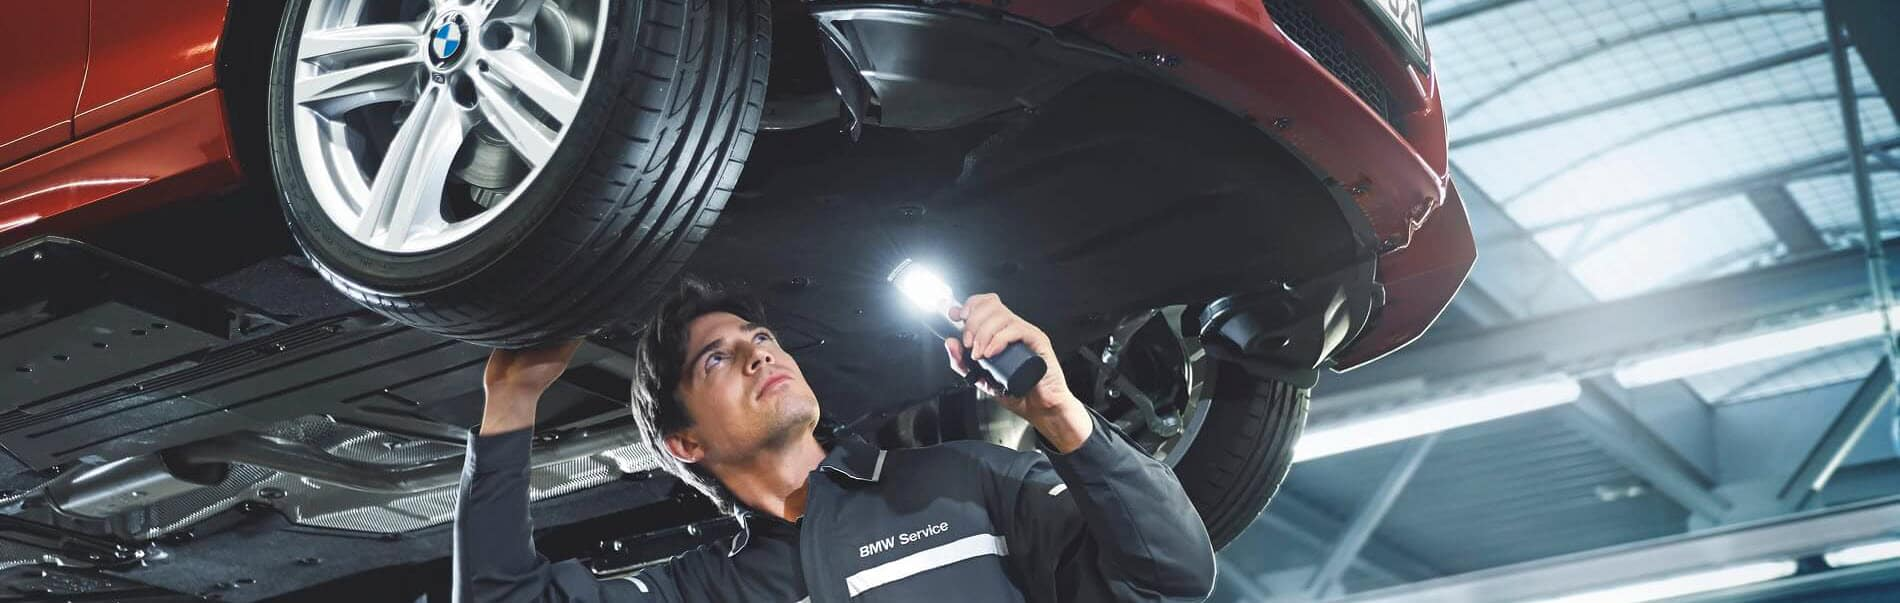 BMW Service Technician